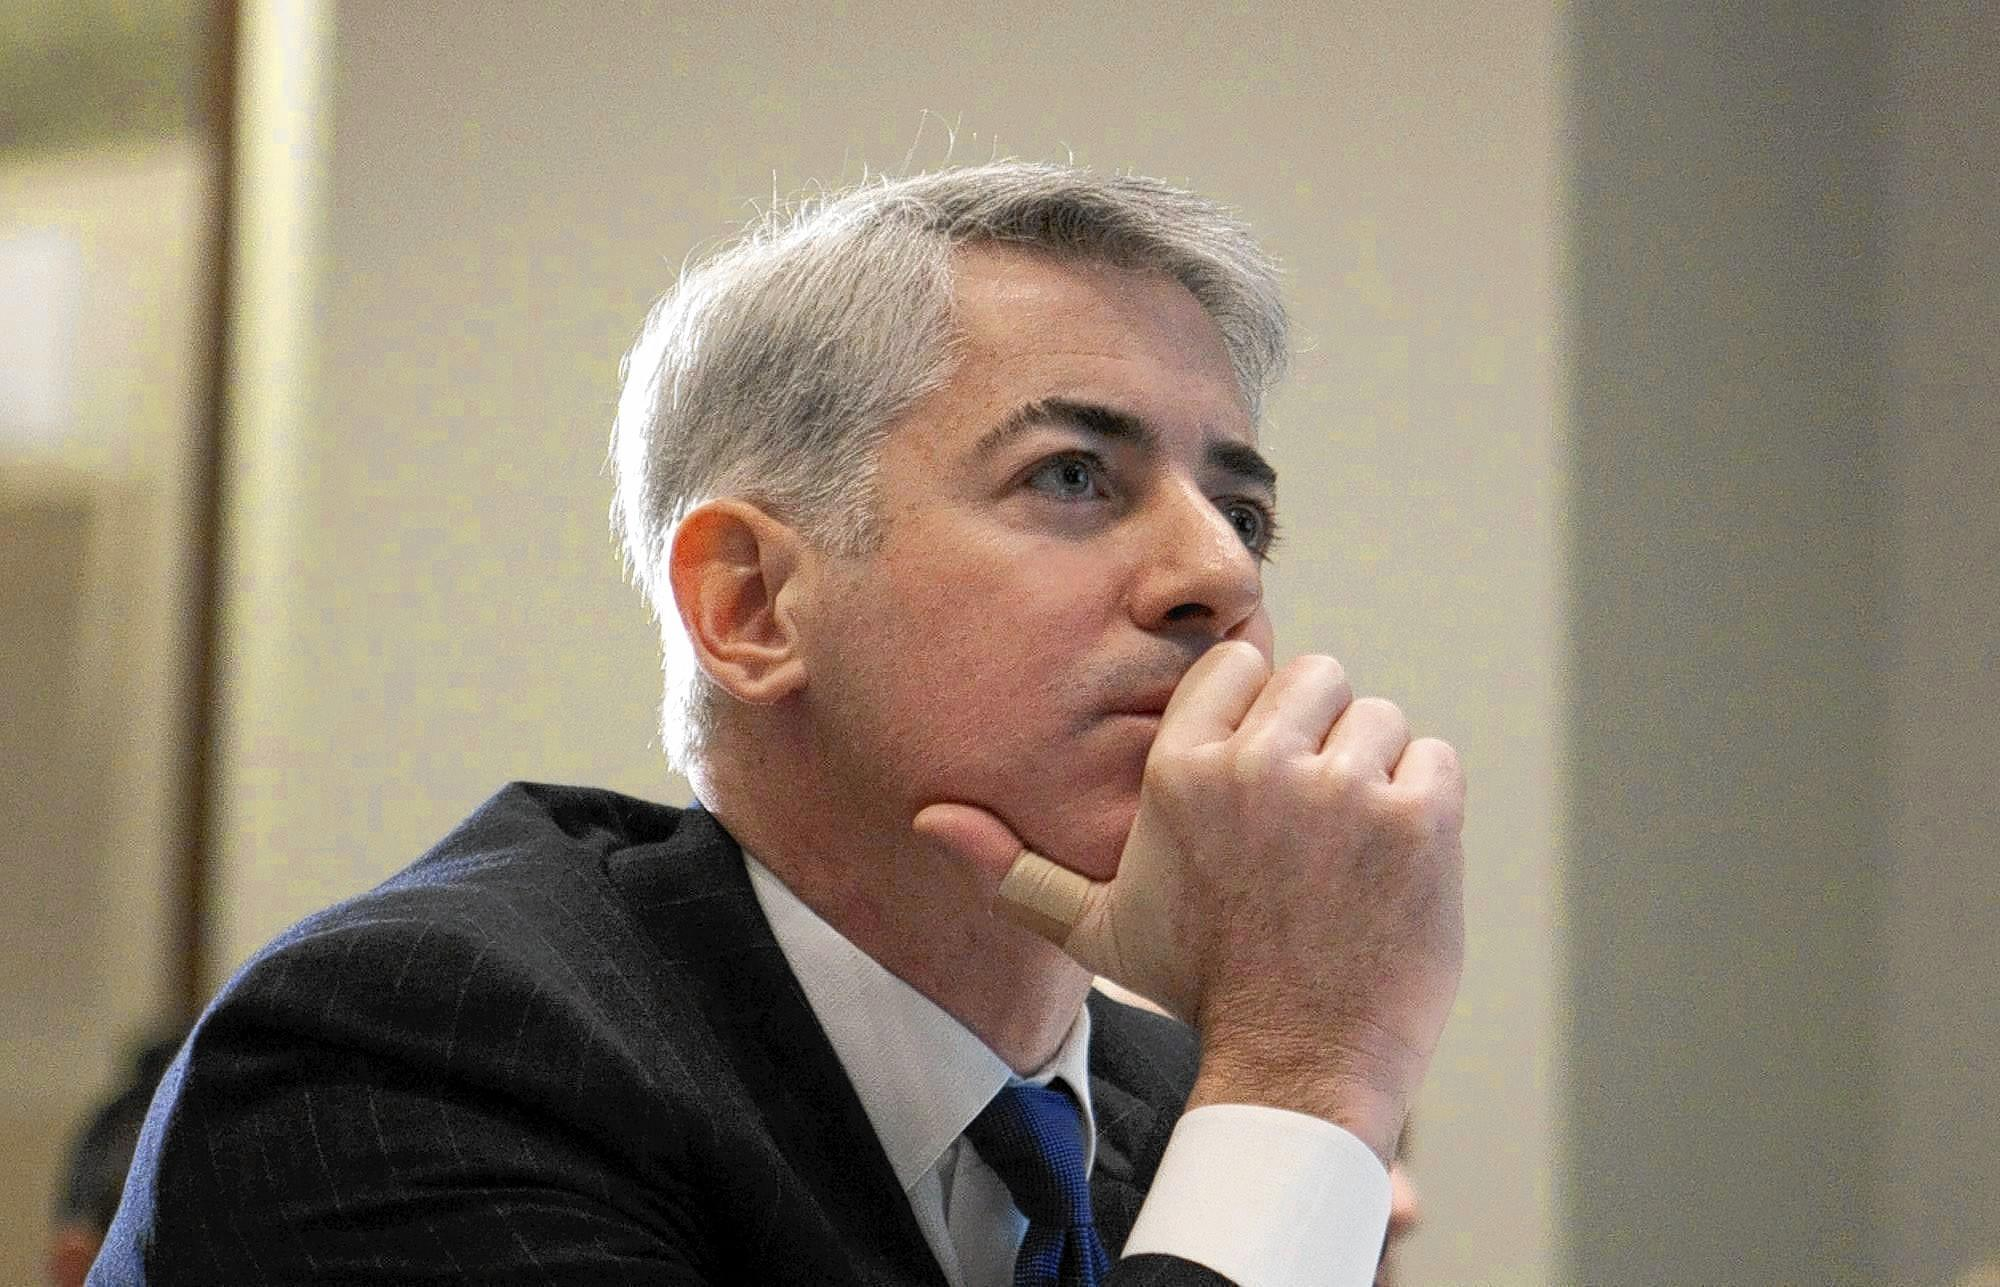 Bill Ackman warned Allergan not to reject Valeant's offer.